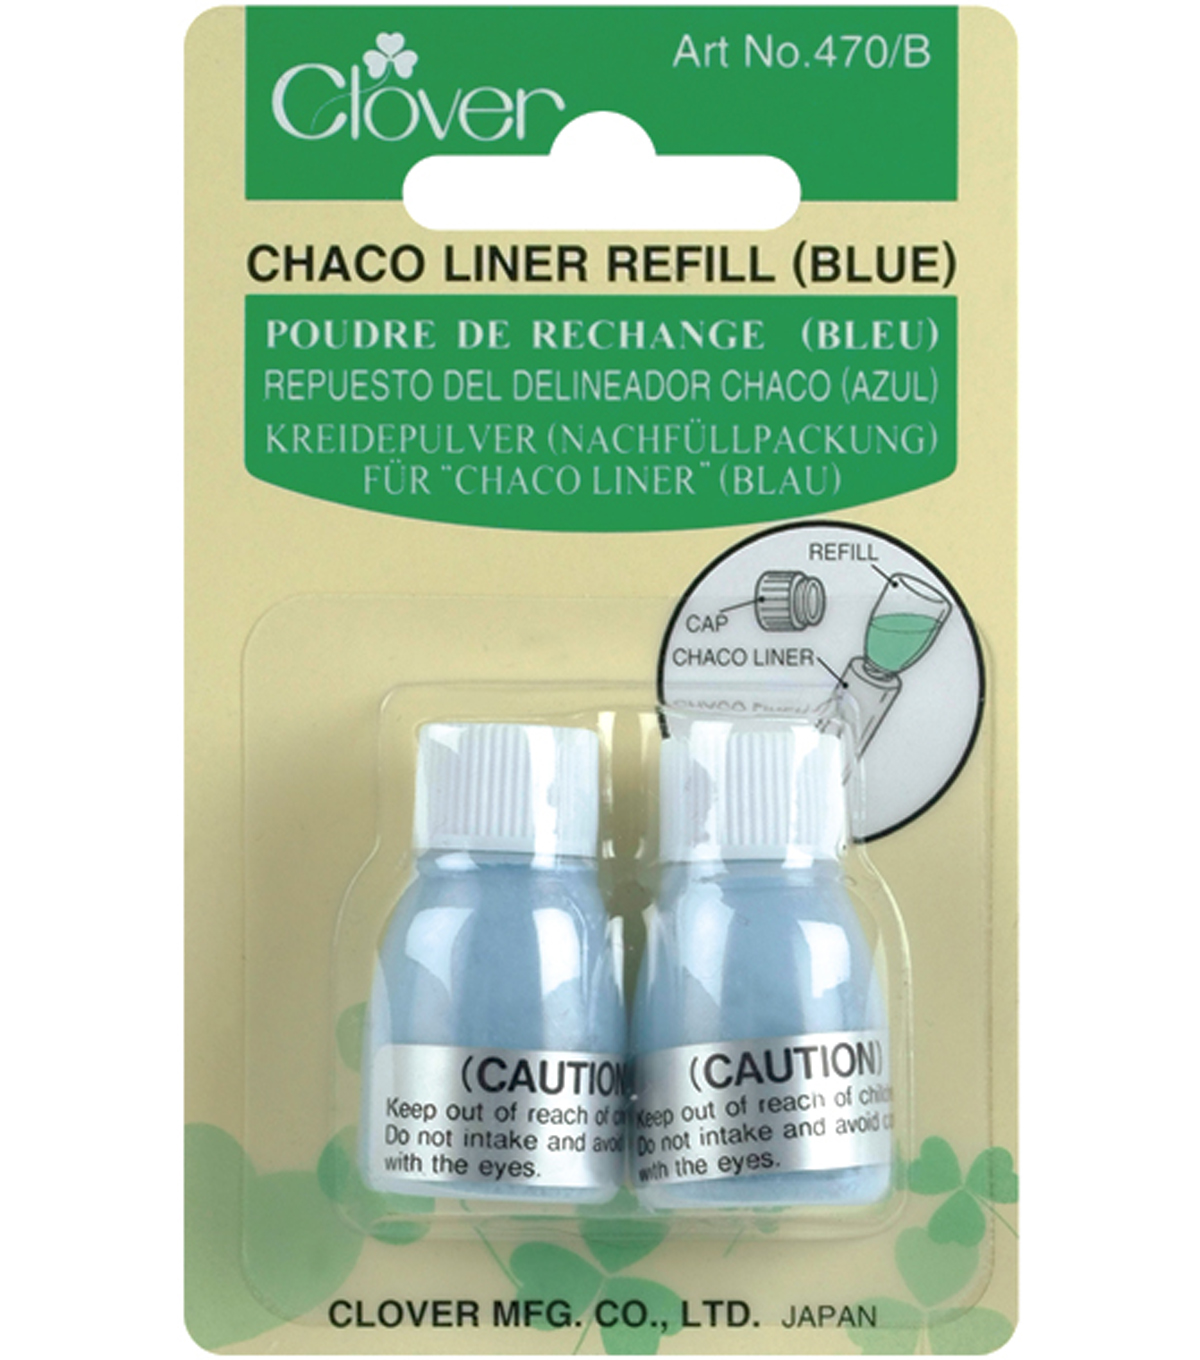 Clover Chaco-Liner Refill